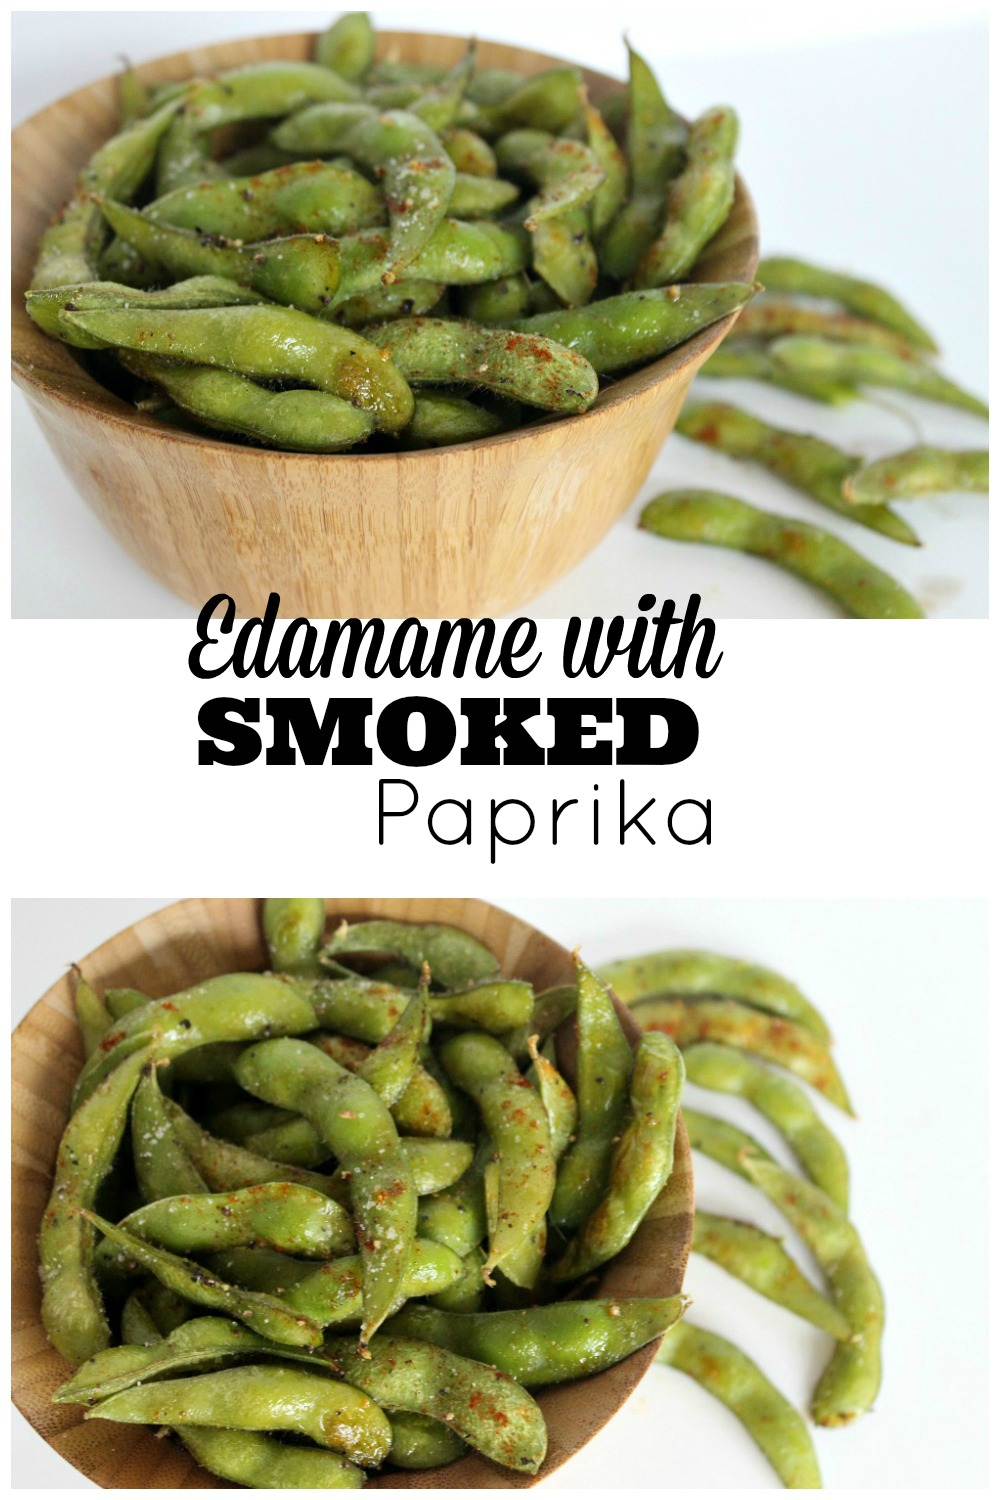 how to cook frozen edamame in microwave